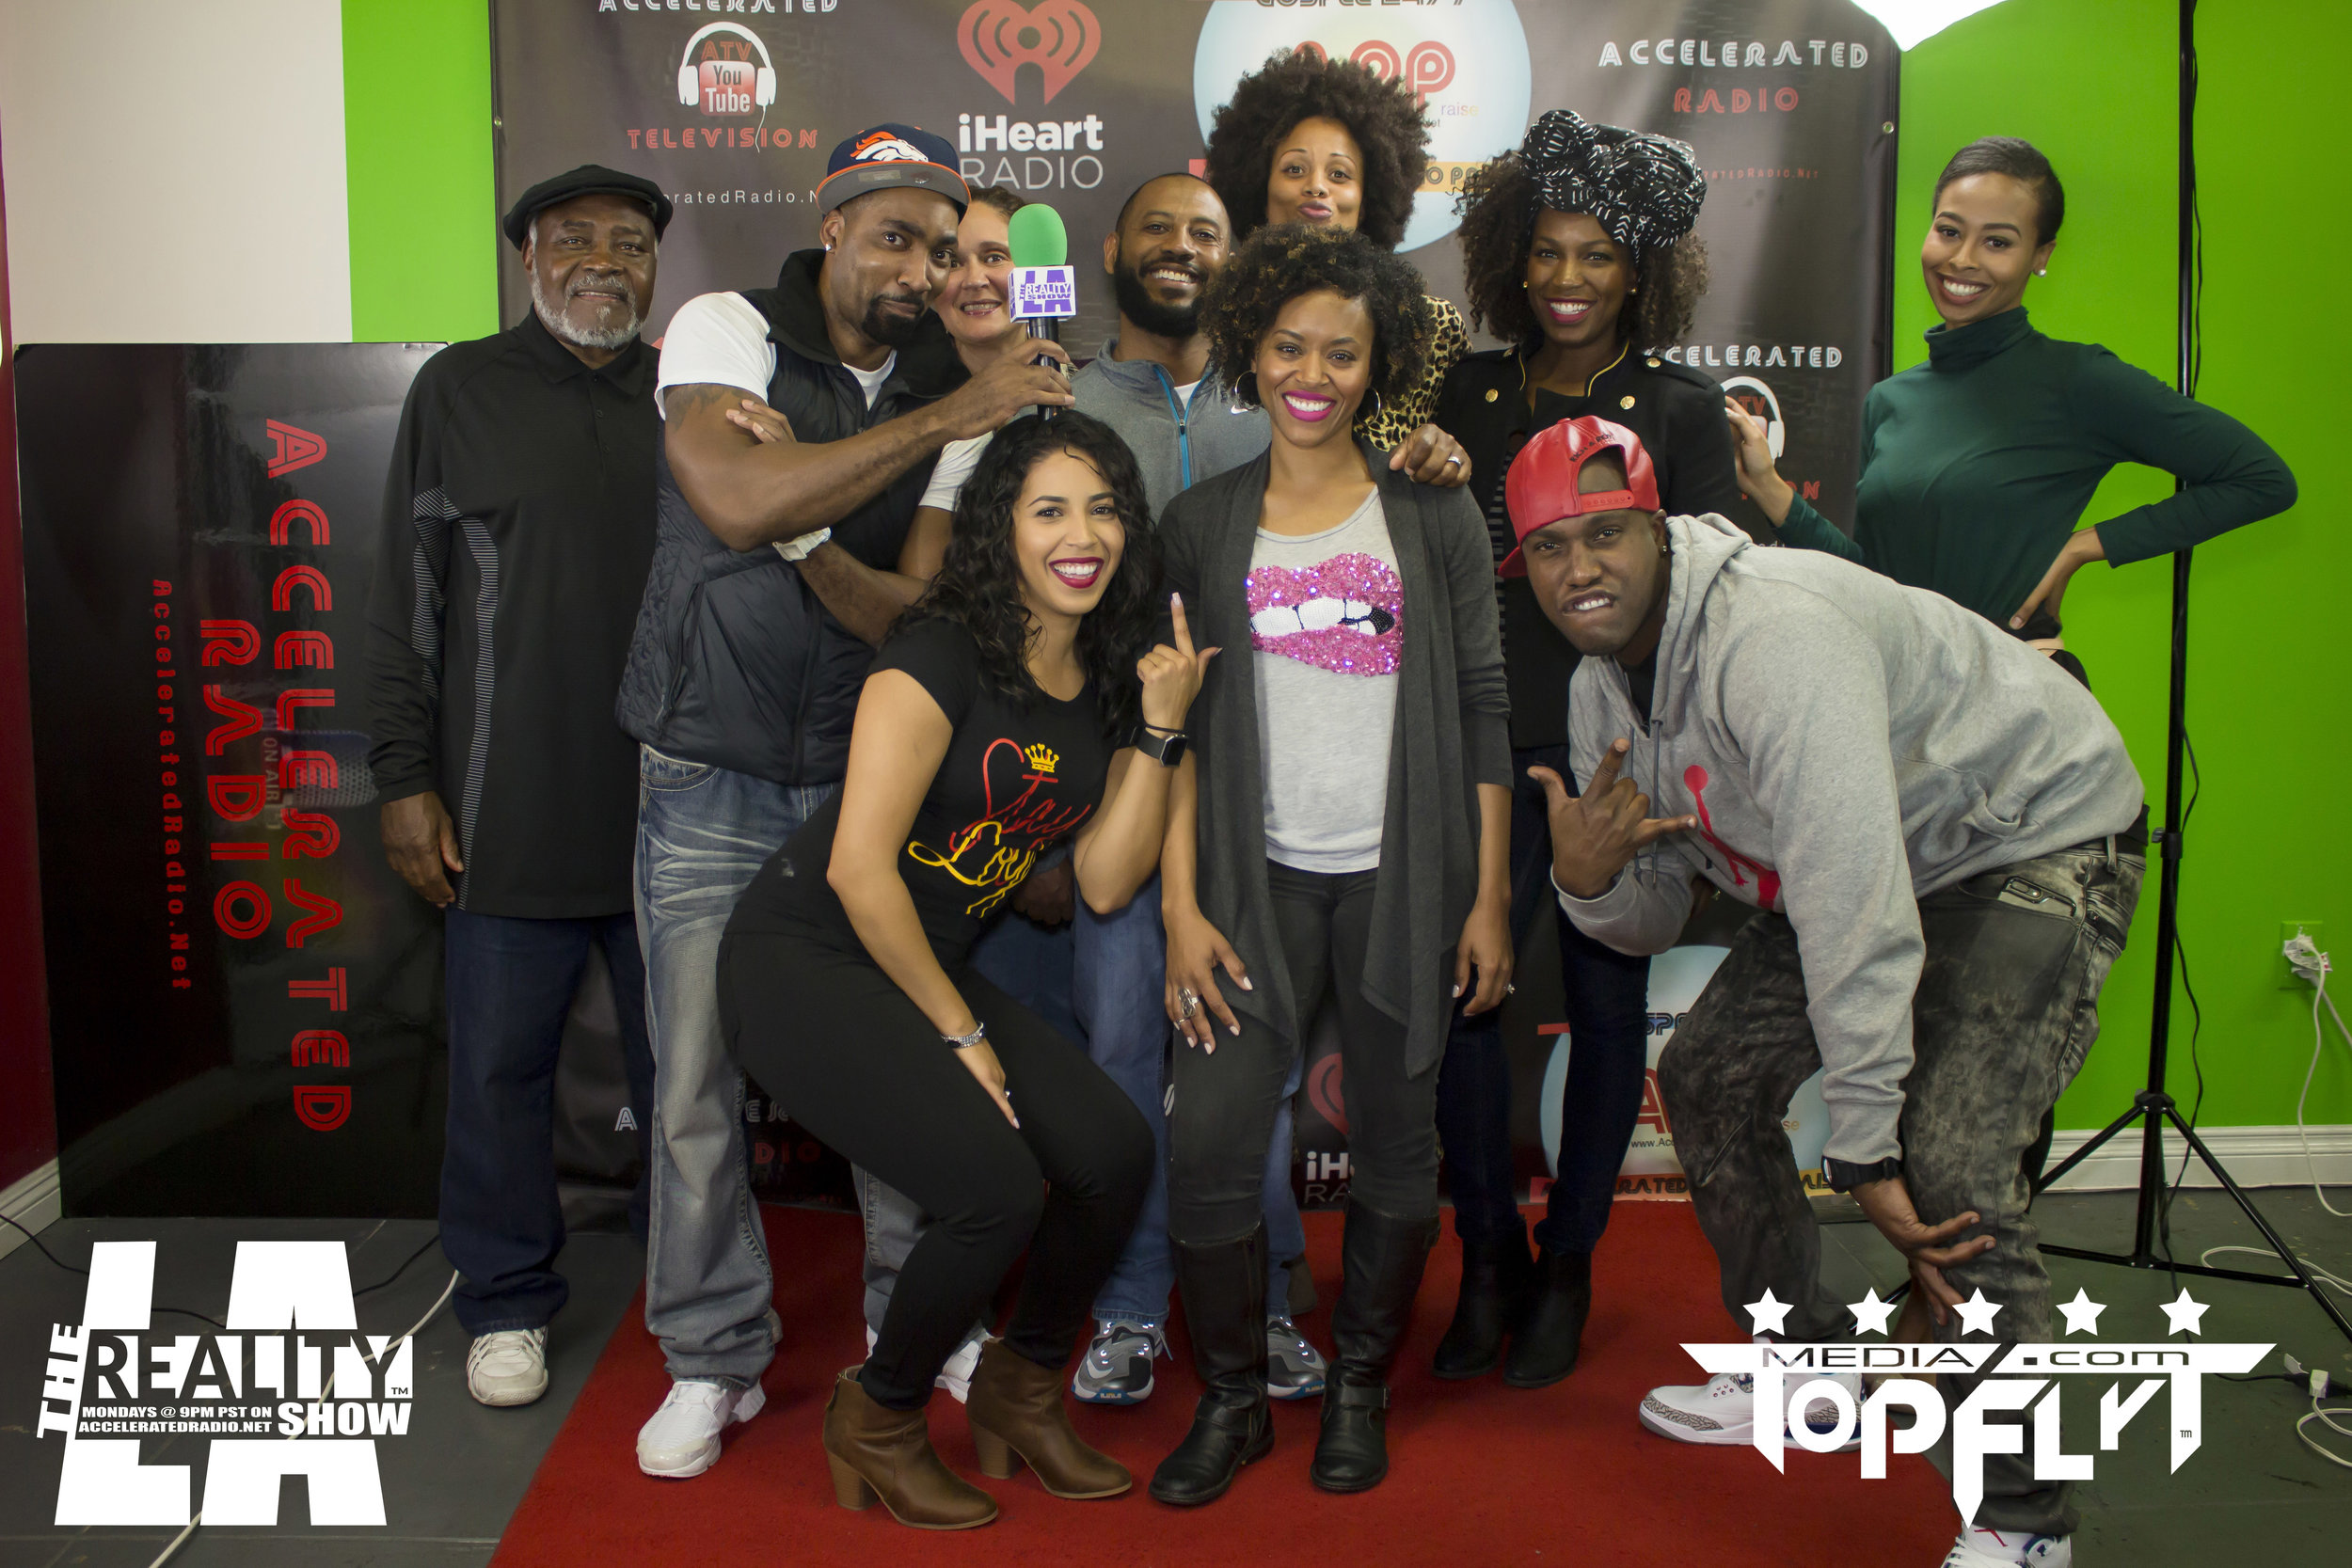 The Reality Show LA ft. Cast of FunnyMarriedStuff And Raquel Harris - 01-16-17_48.jpg